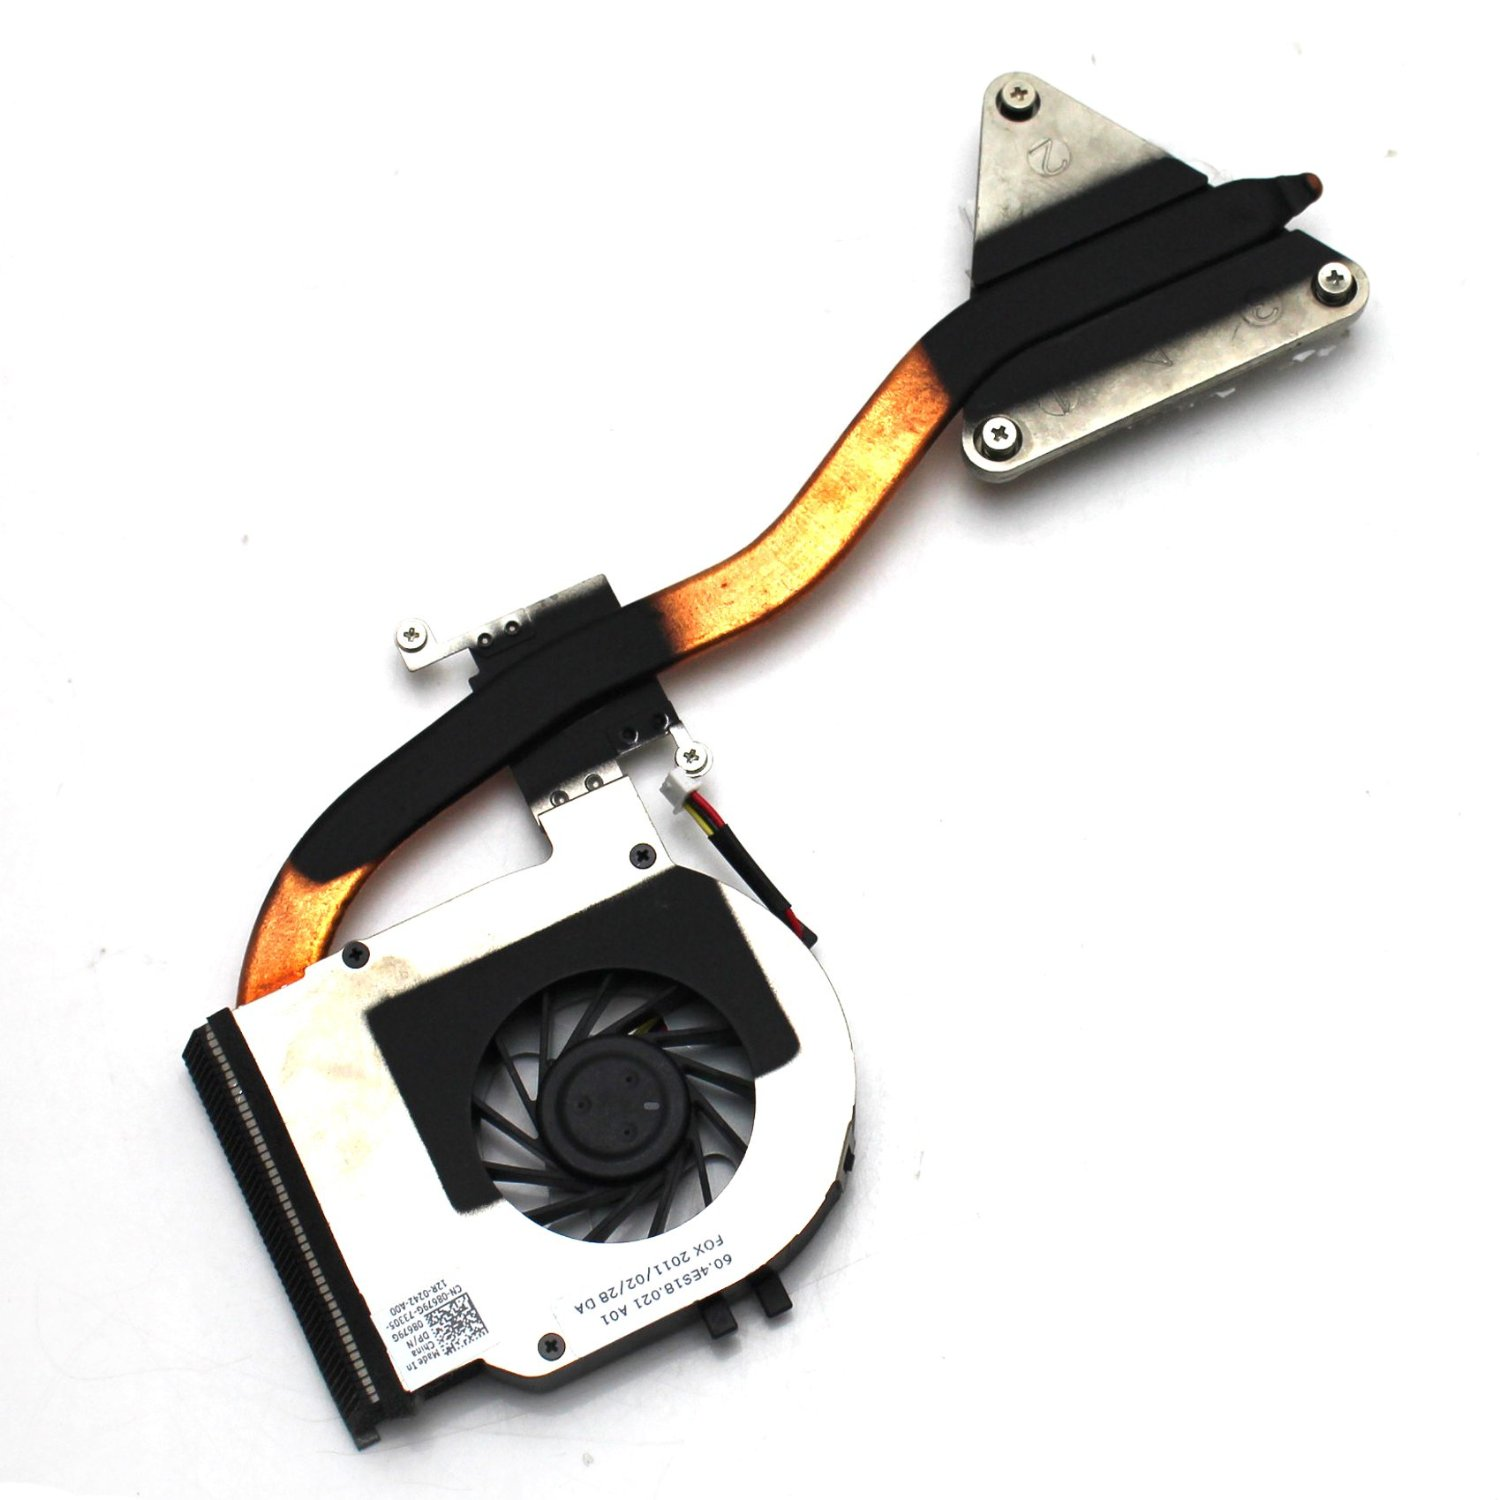 Generic New Notebook CPU Cooling Fan with Heatsink for Dell 3400 3500 Series Replacement Part Number DFS451205M10T UDQF2HH01CAR KSB05105HA-9K32 with Thermal Paste